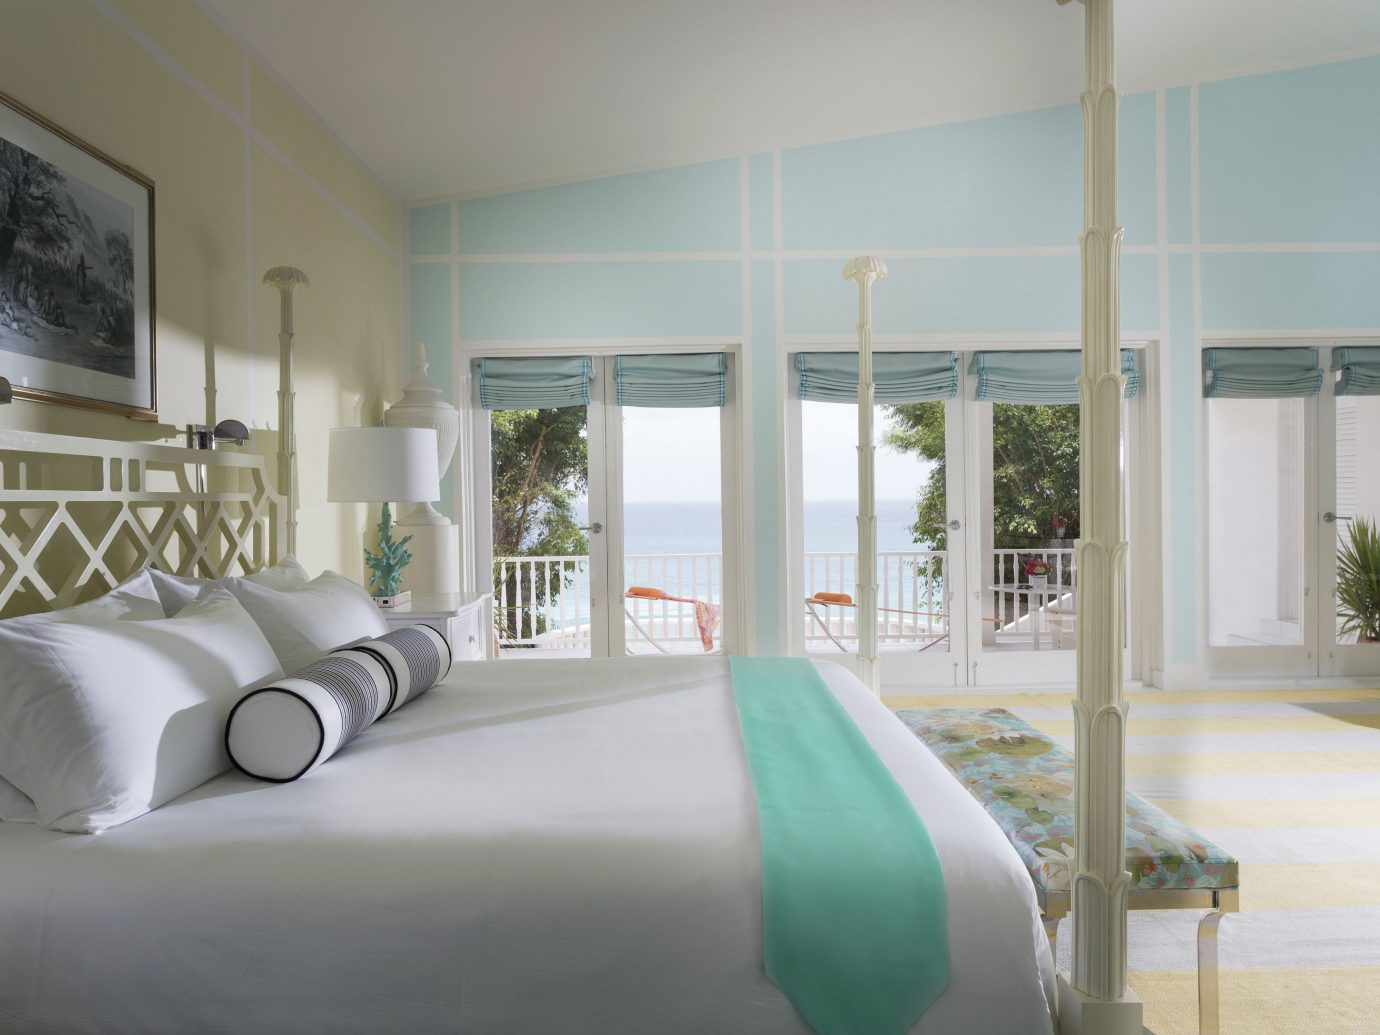 Balcony Beach Beachfront Bedroom Elegant Hotels Island Luxury Scenic views Suite Terrace Trip Ideas Waterfront indoor wall room window floor property ceiling green living room home condominium interior design estate real estate Design furniture apartment area decorated